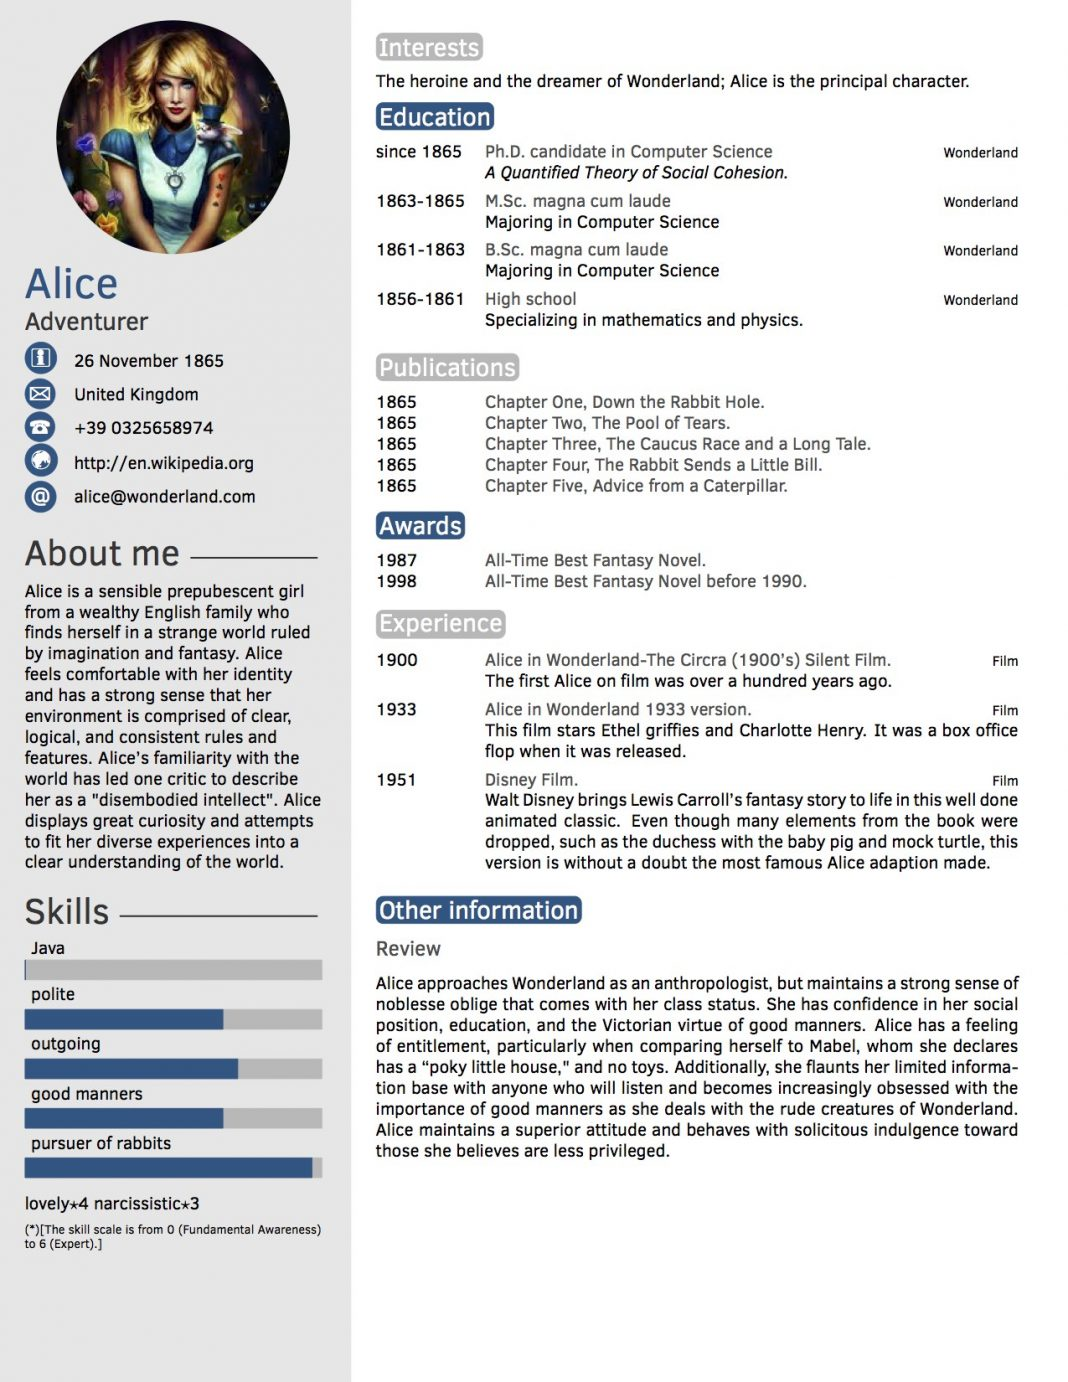 cv in tabular form - 18 tabular resume format templates